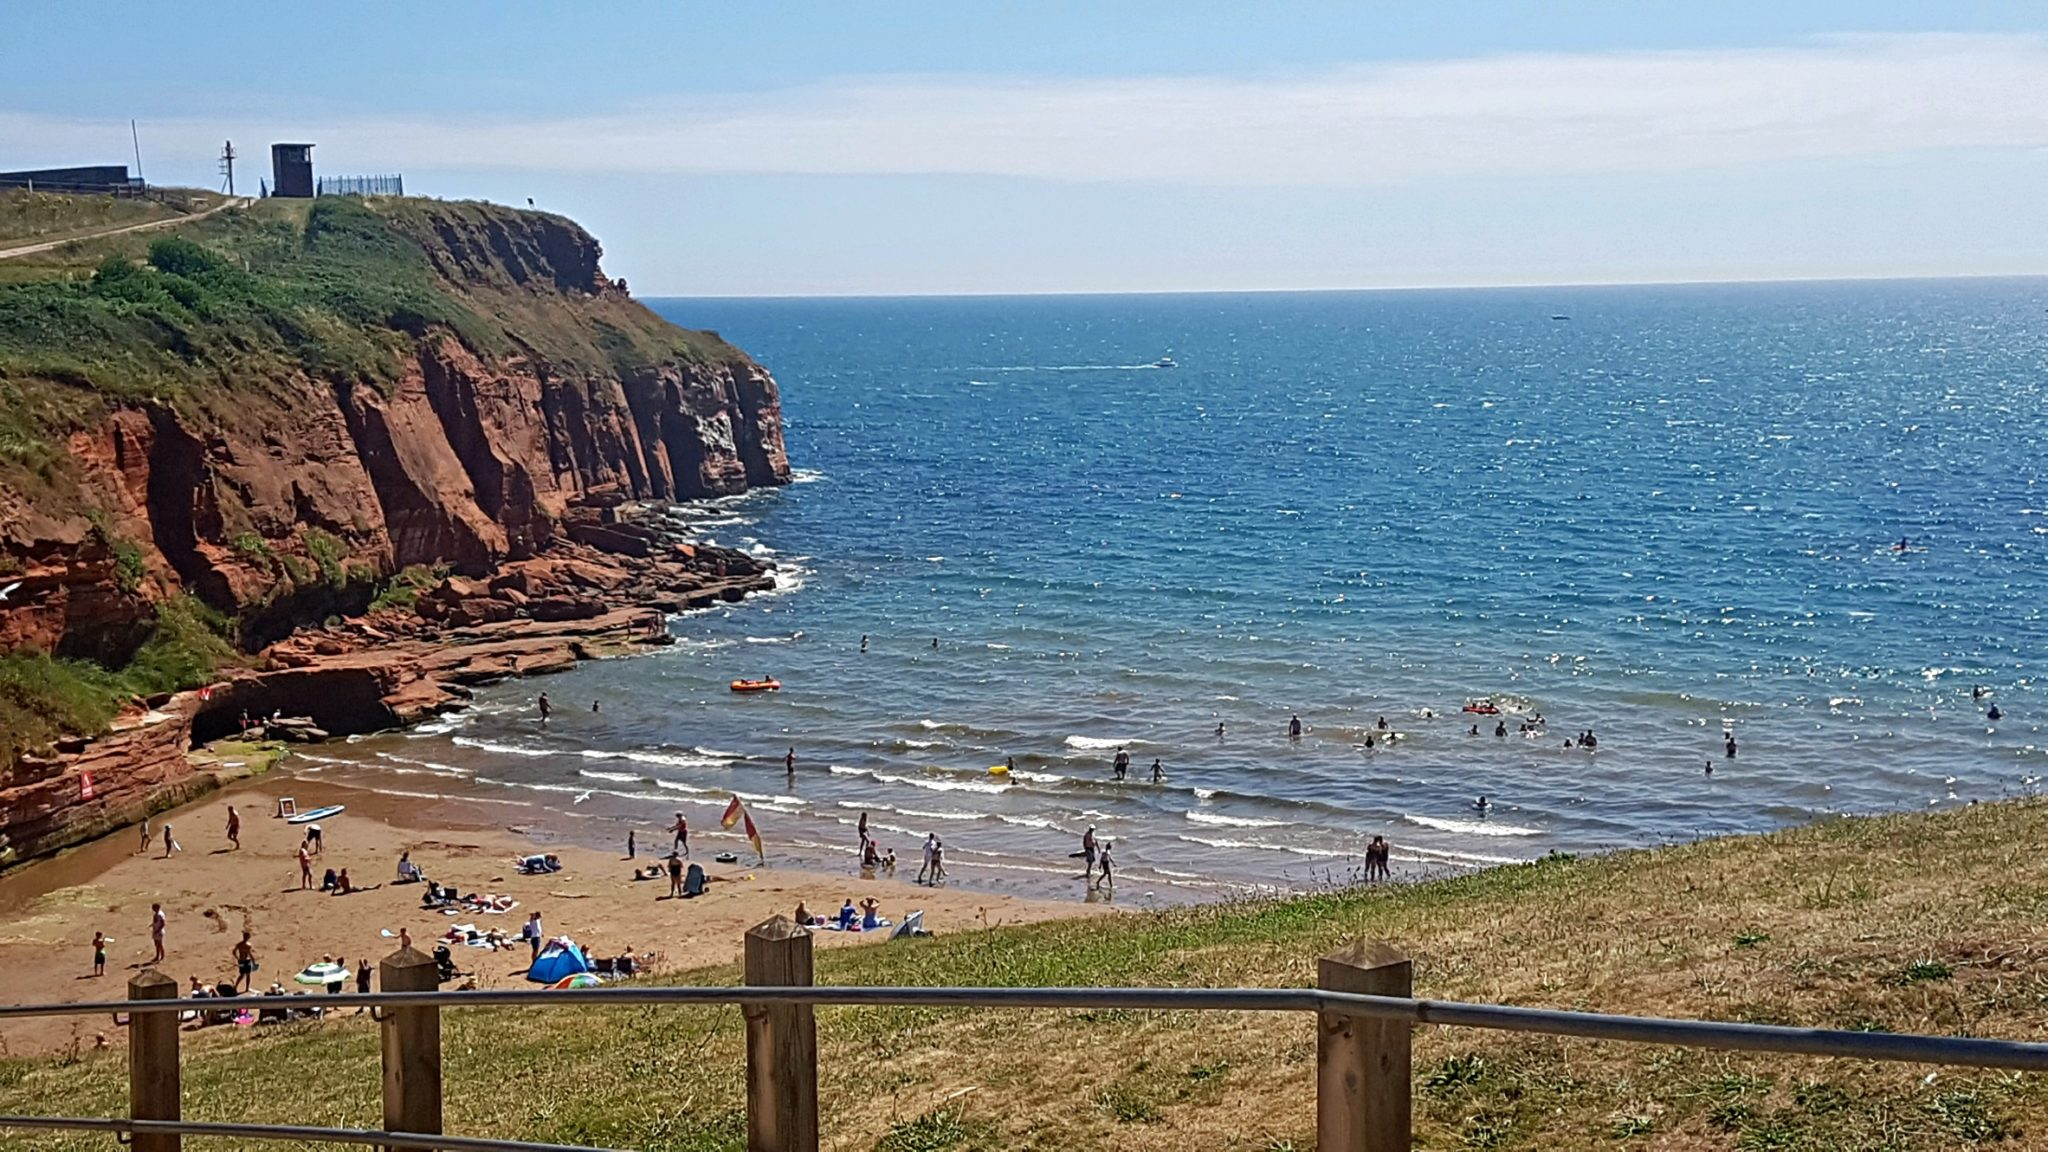 a busy beach surrounded by cliffs